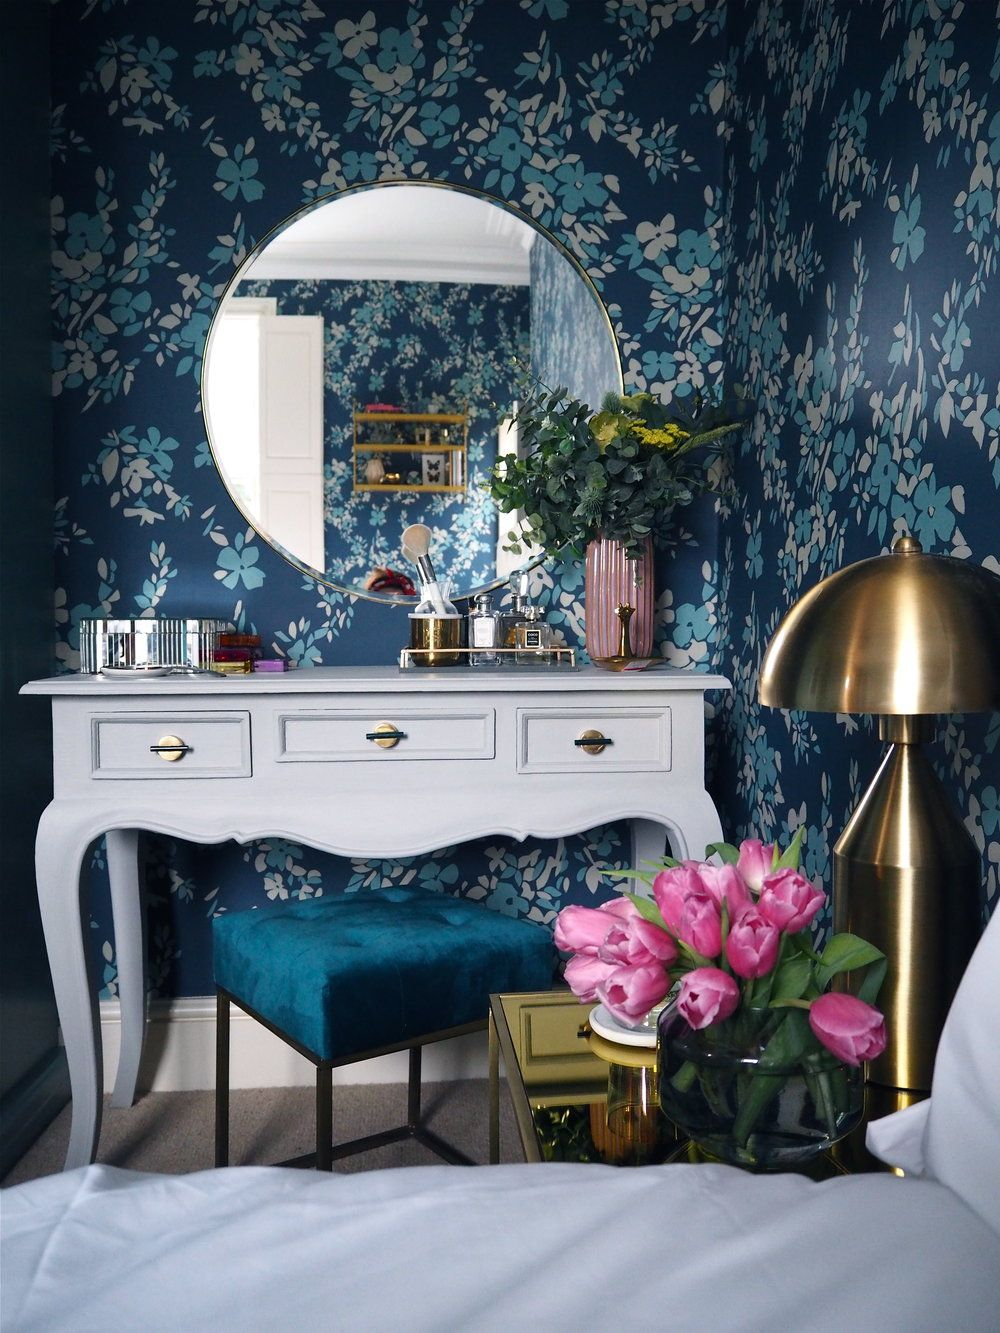 New Year, New Bedroom! Embracing The Maximalism Trend In